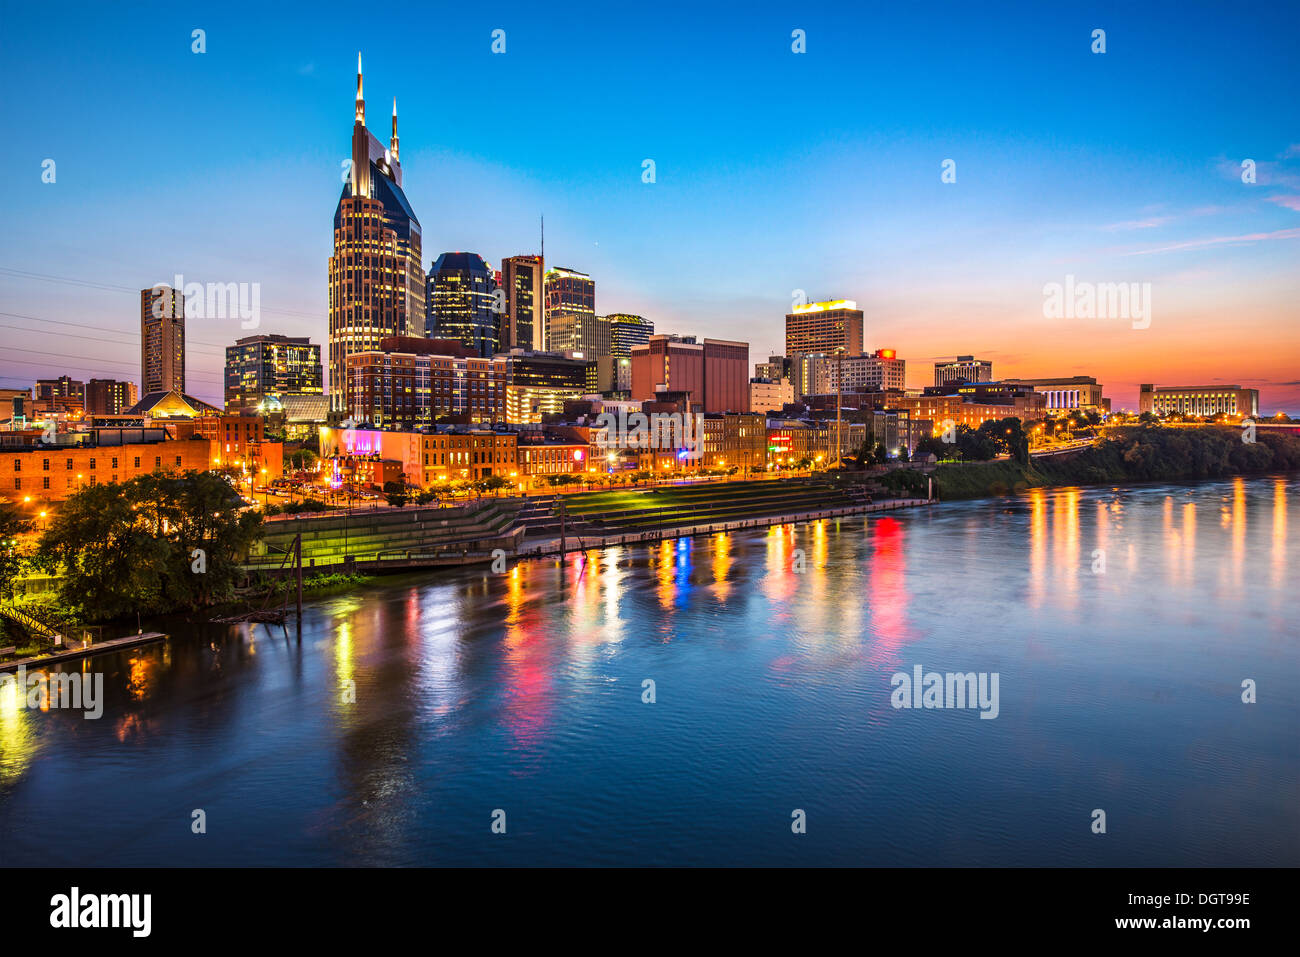 Skyline of downtown Nashville, Tennessee. - Stock Image